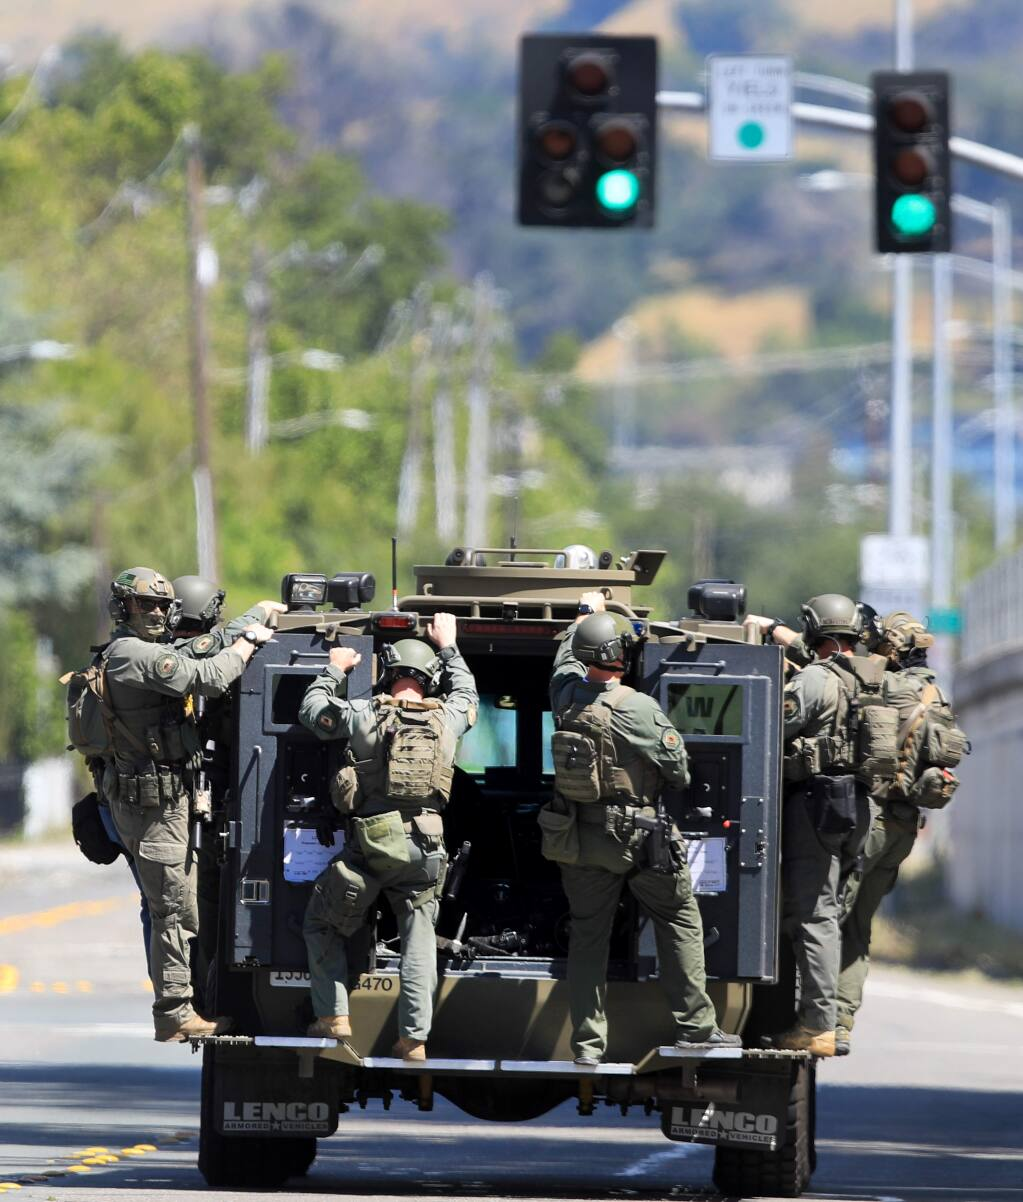 After searching a house on Cleveland Ave., Friday, May 15, 2020 in Santa Rosa, deputies with the Sonoma County Sheriff's Department leave the scene. The search was related to a gang related shooting Thursday night at Andy's Unity Park on Mooreland Ave. (Kent Porter / The Press Democrat) 2020